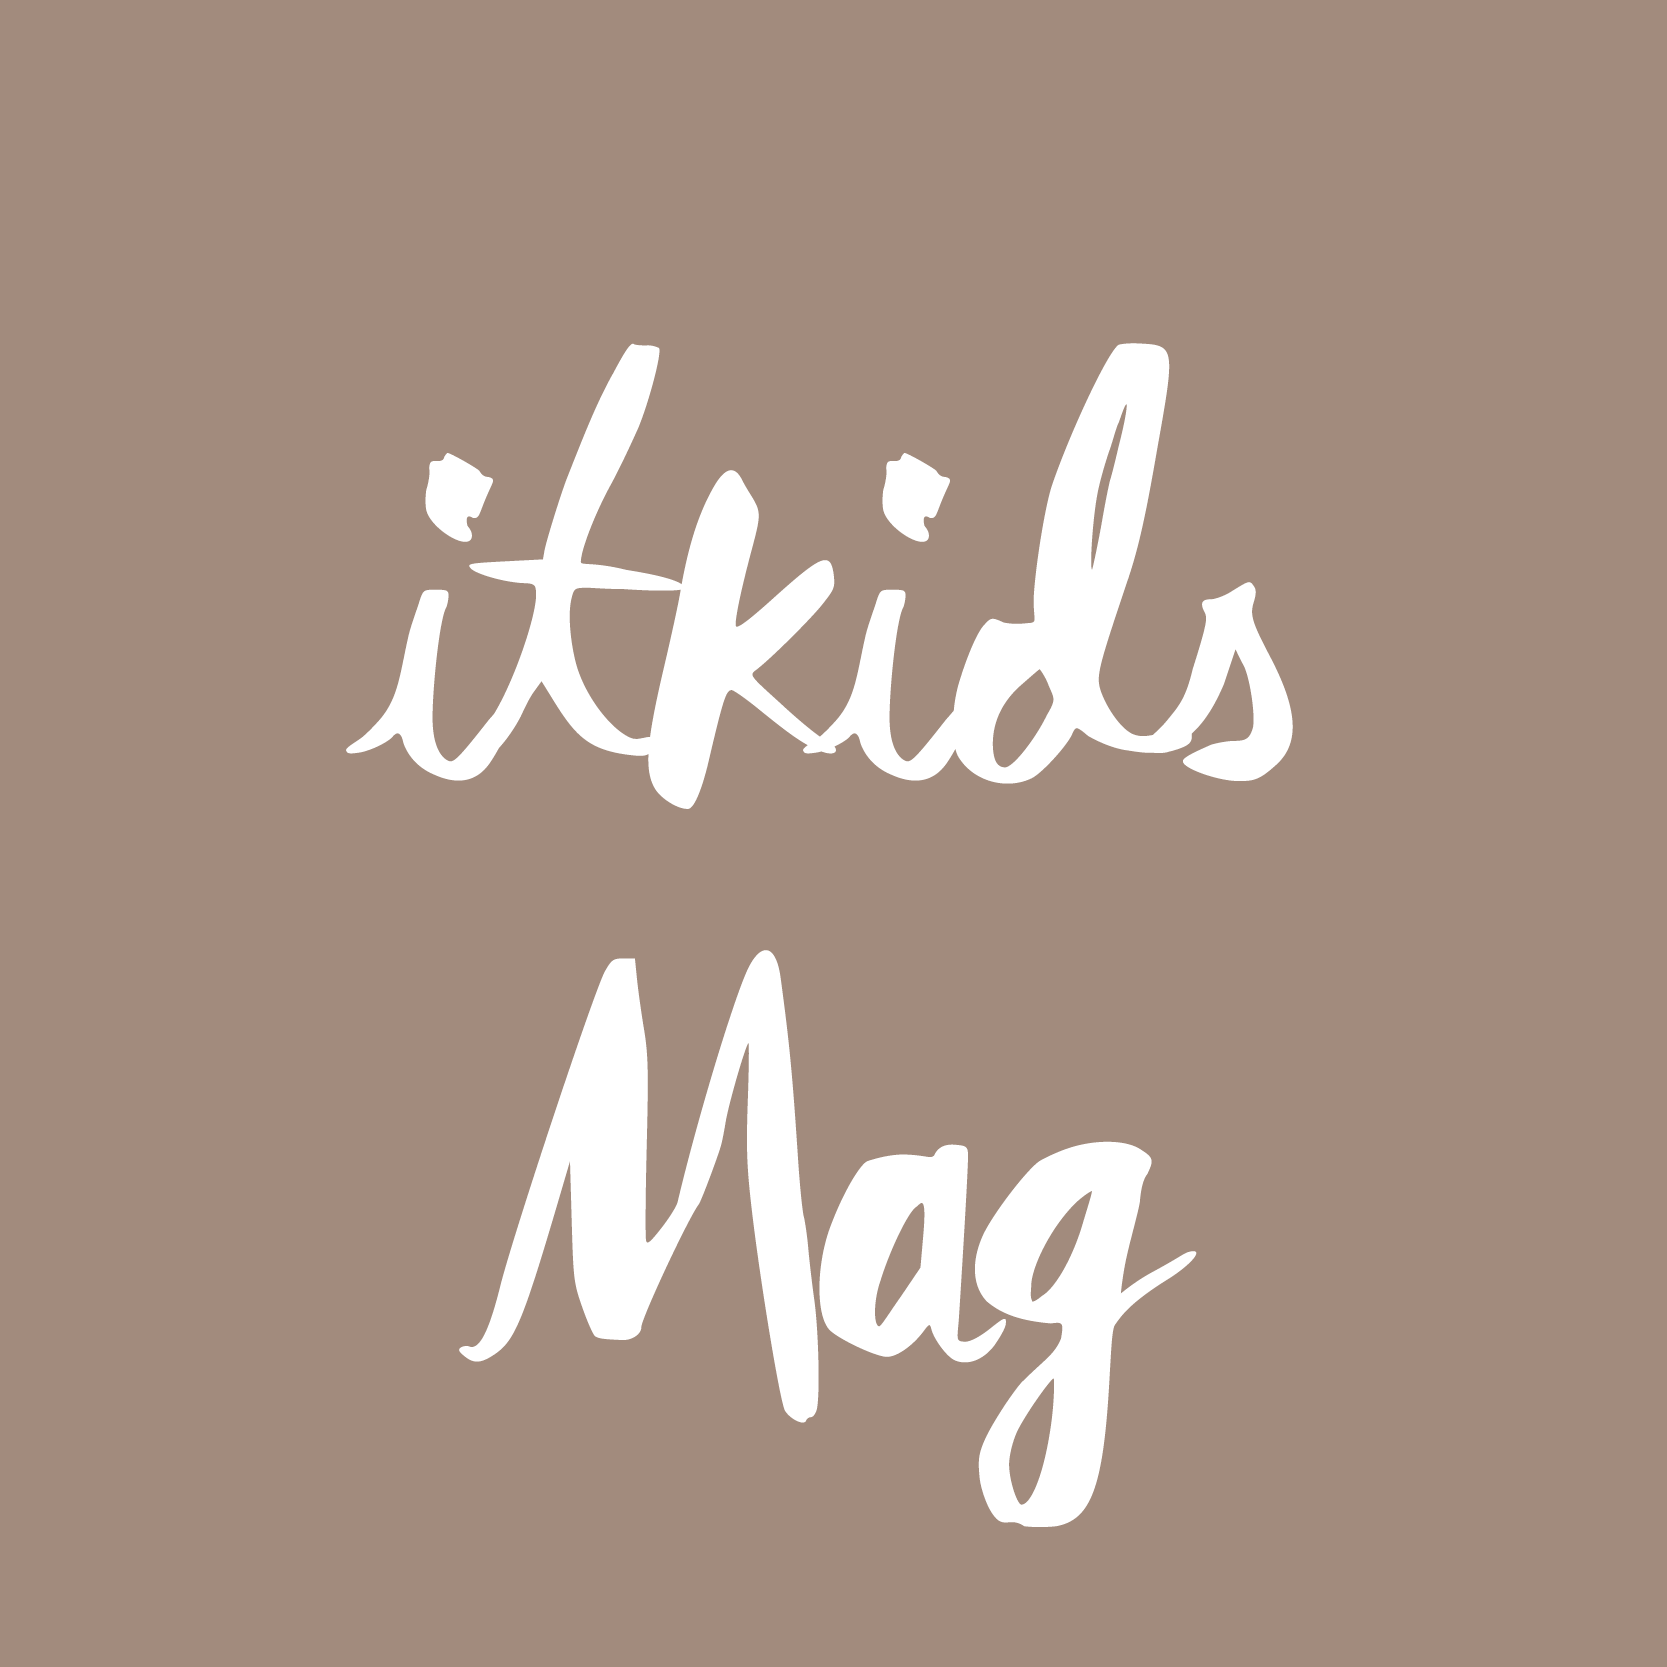 itkids mag